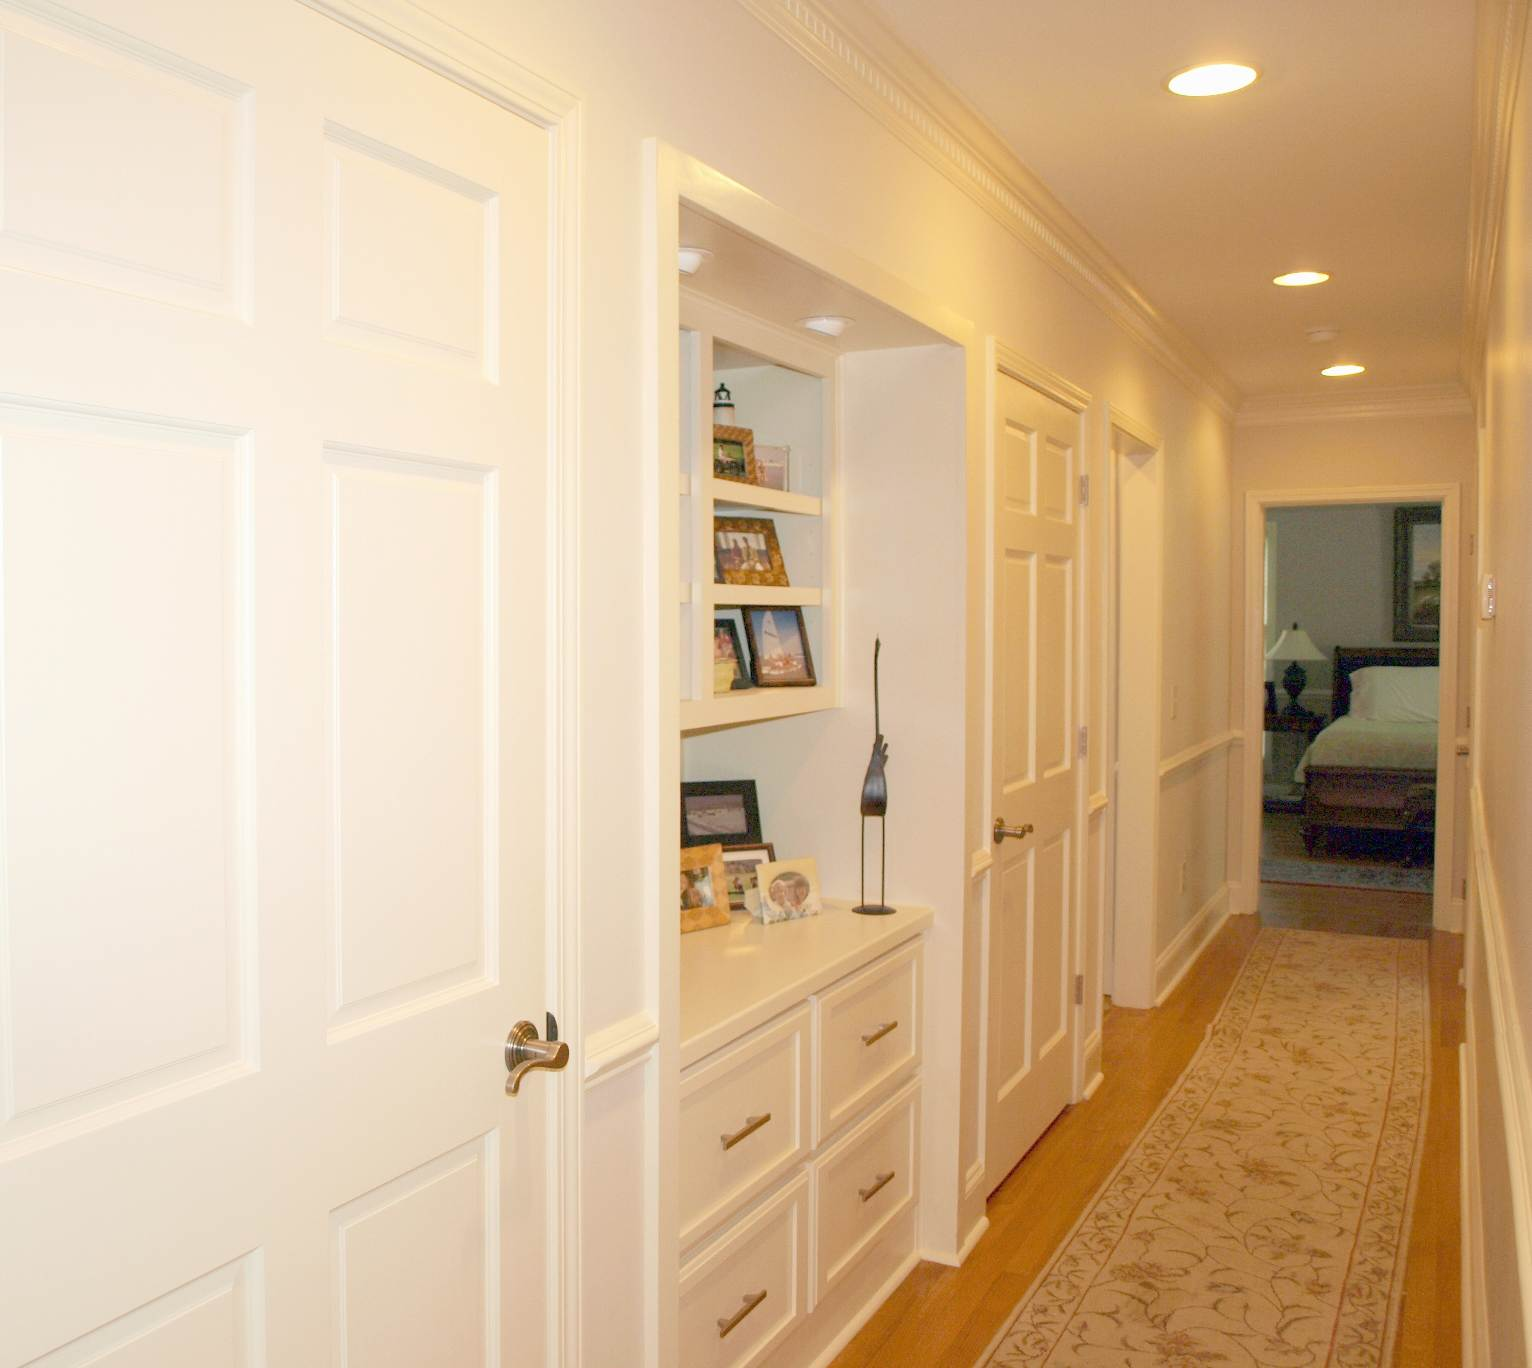 New Home Designs Latest December 2012: Greenville Renovations And Remodeling